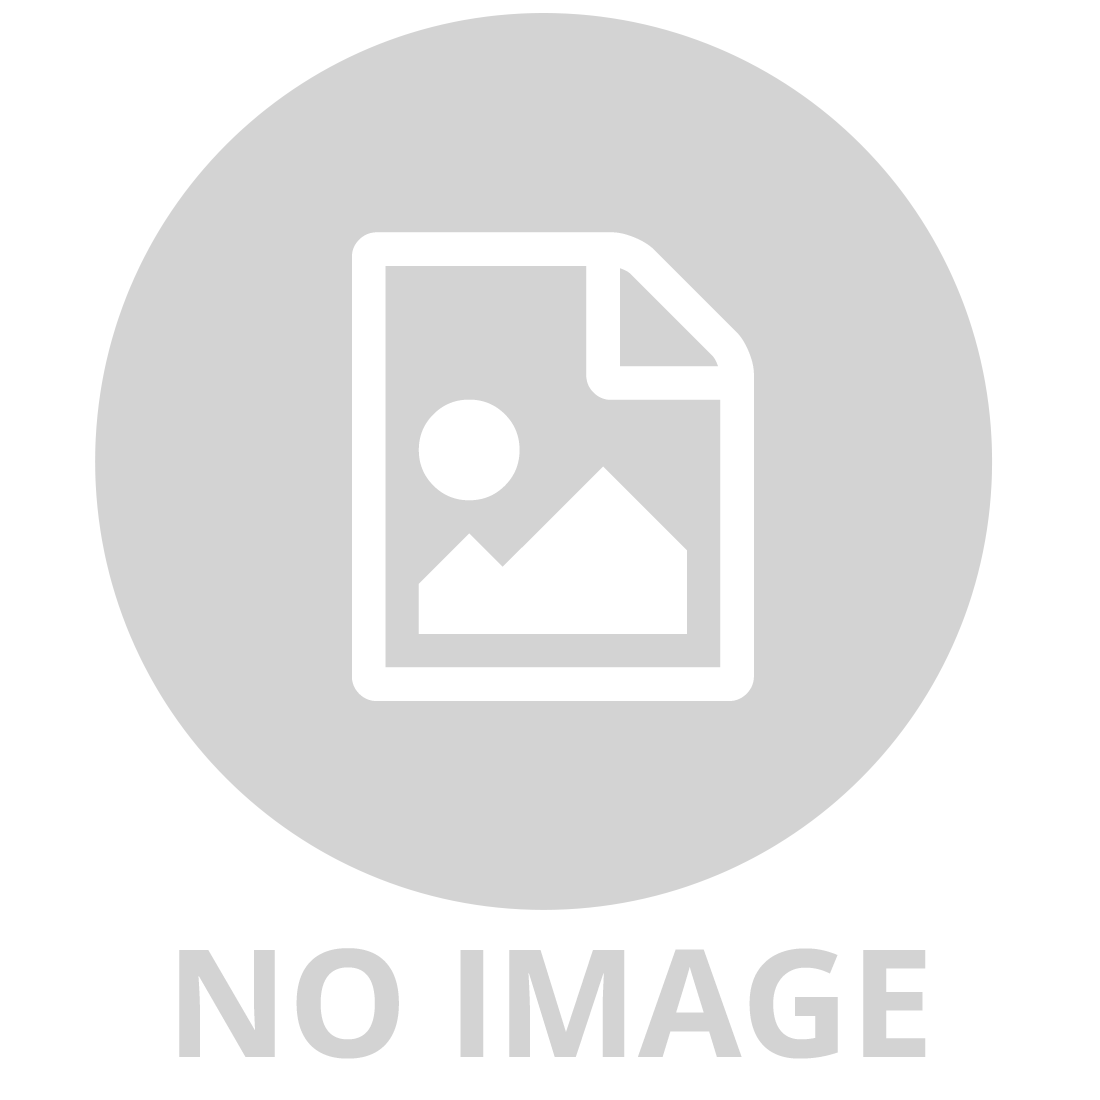 TEAM A FIRE ENGINE